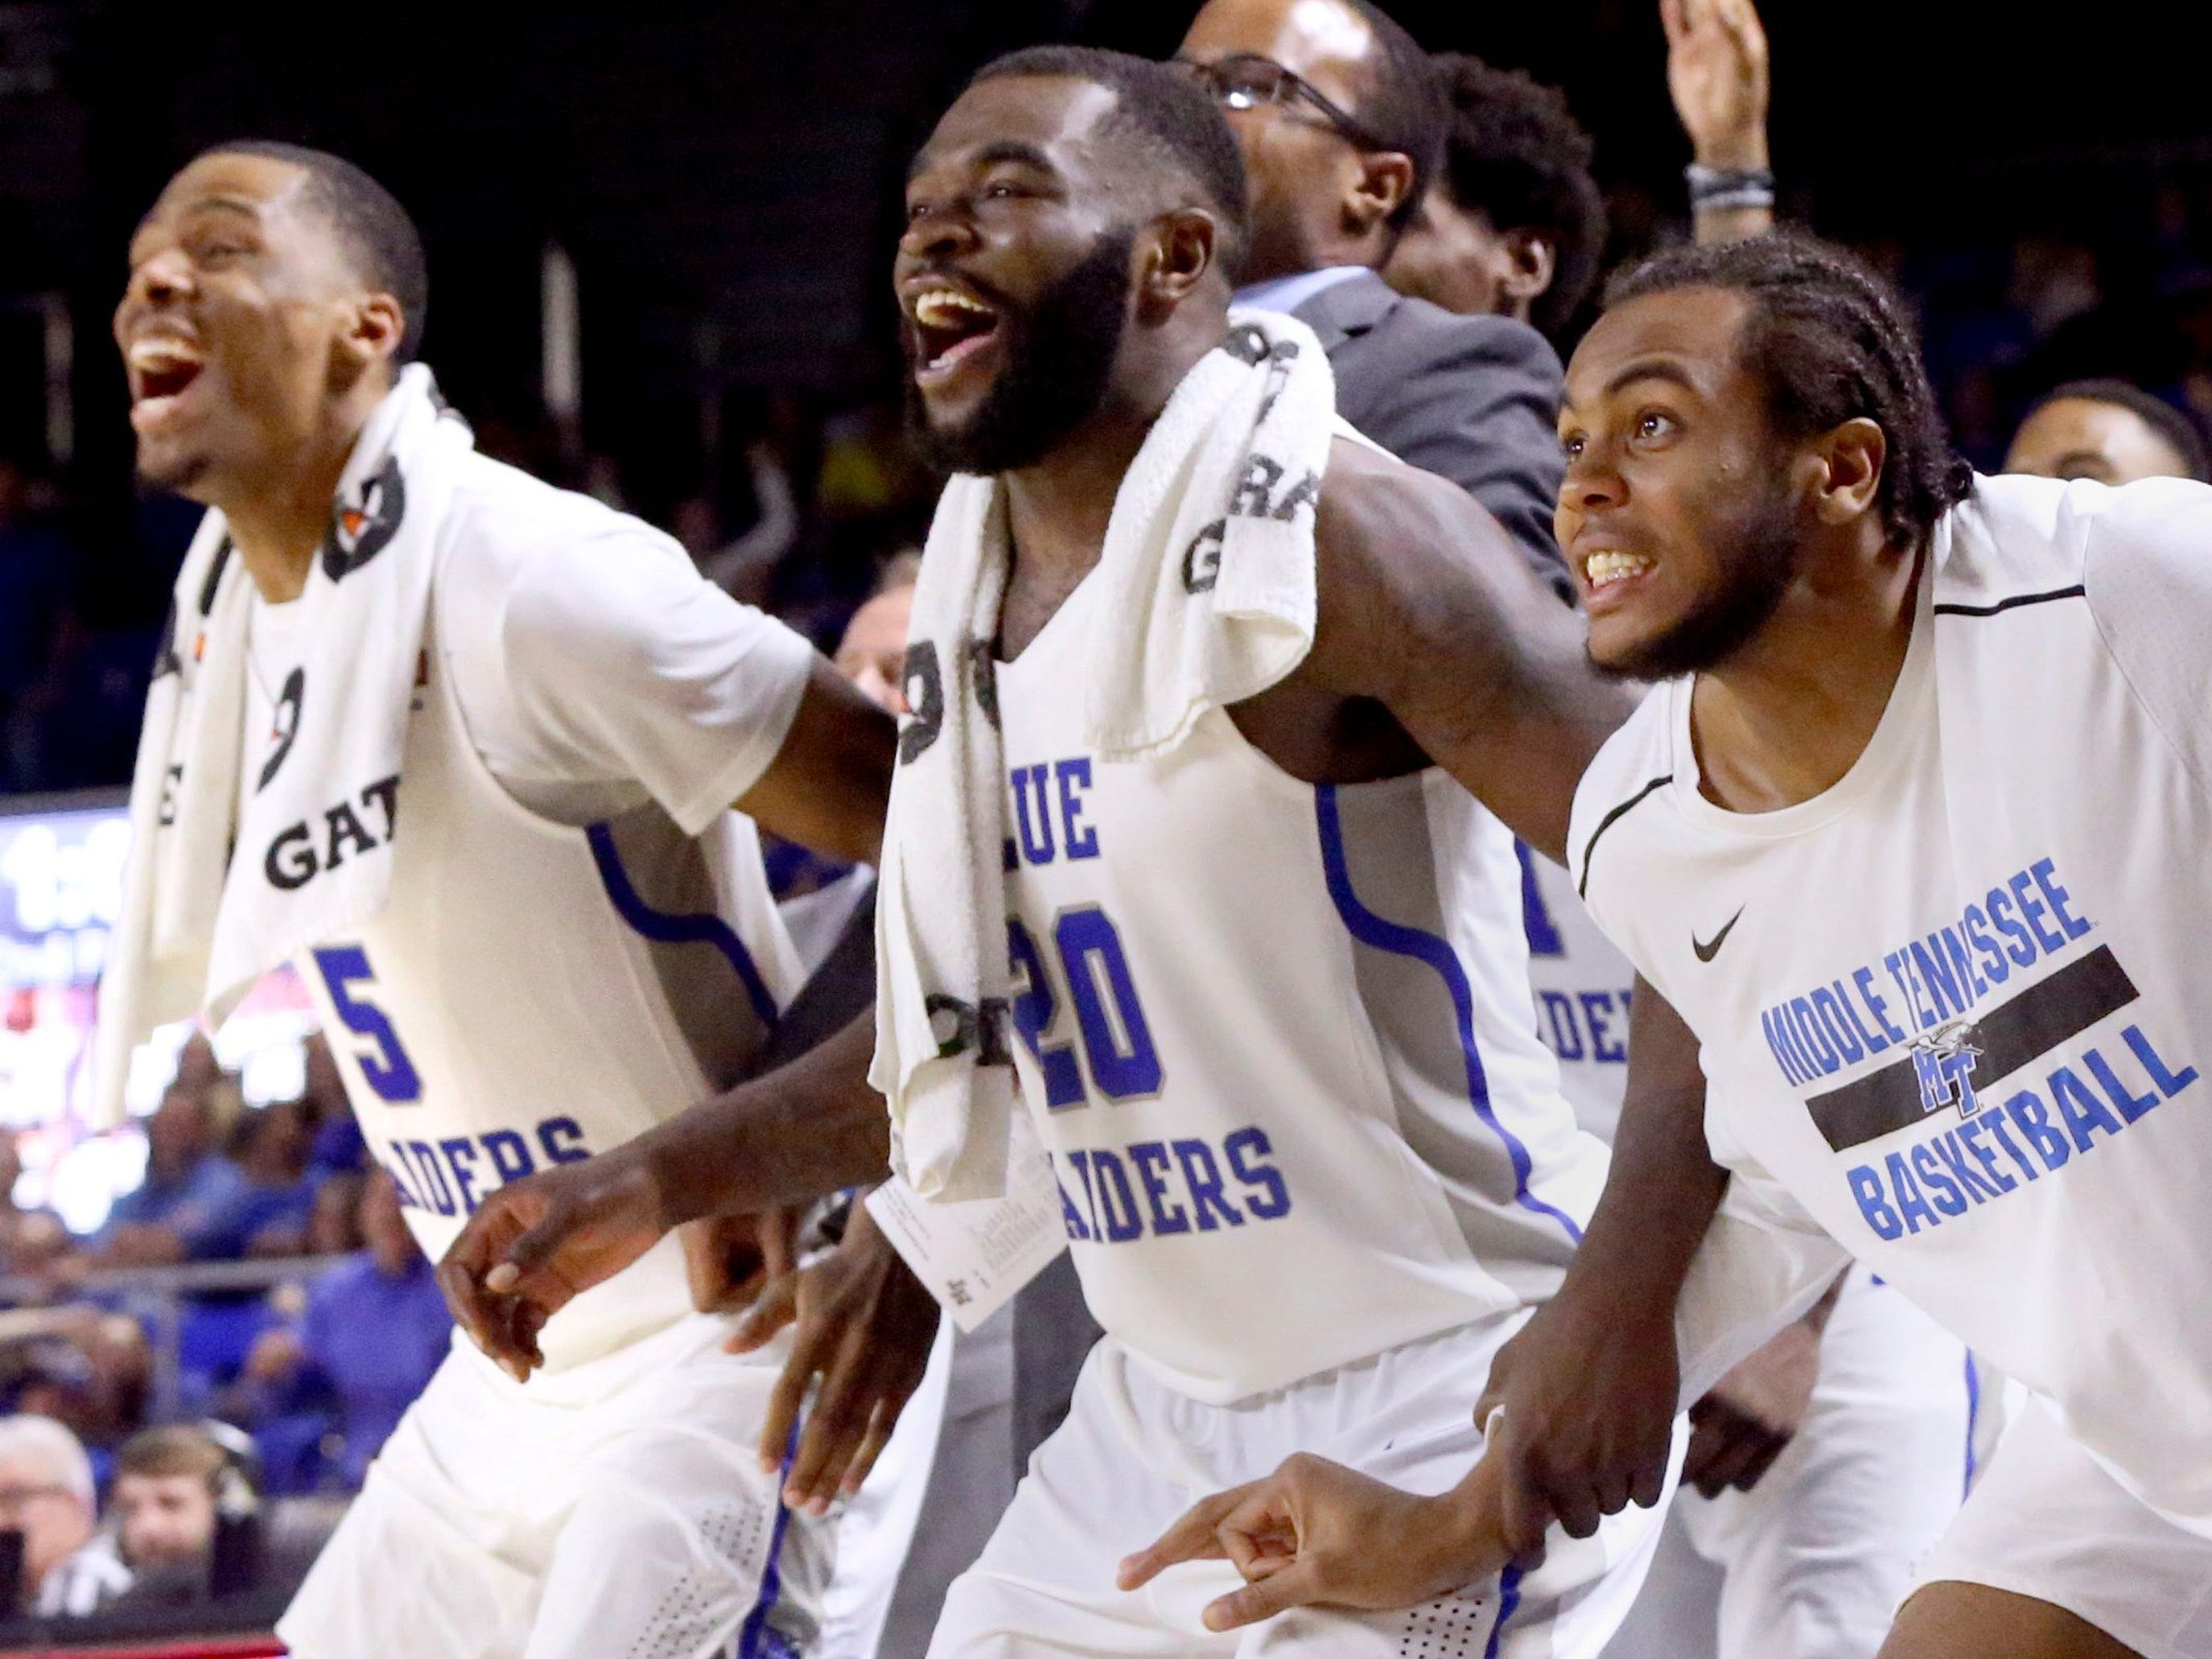 MTSU?s Nick King (5), Giddy Potts (20) and TJ Massenburg (15) react from the bench in the final minutes of the game against UAB on Saturday. HELEN COMER / DNJ